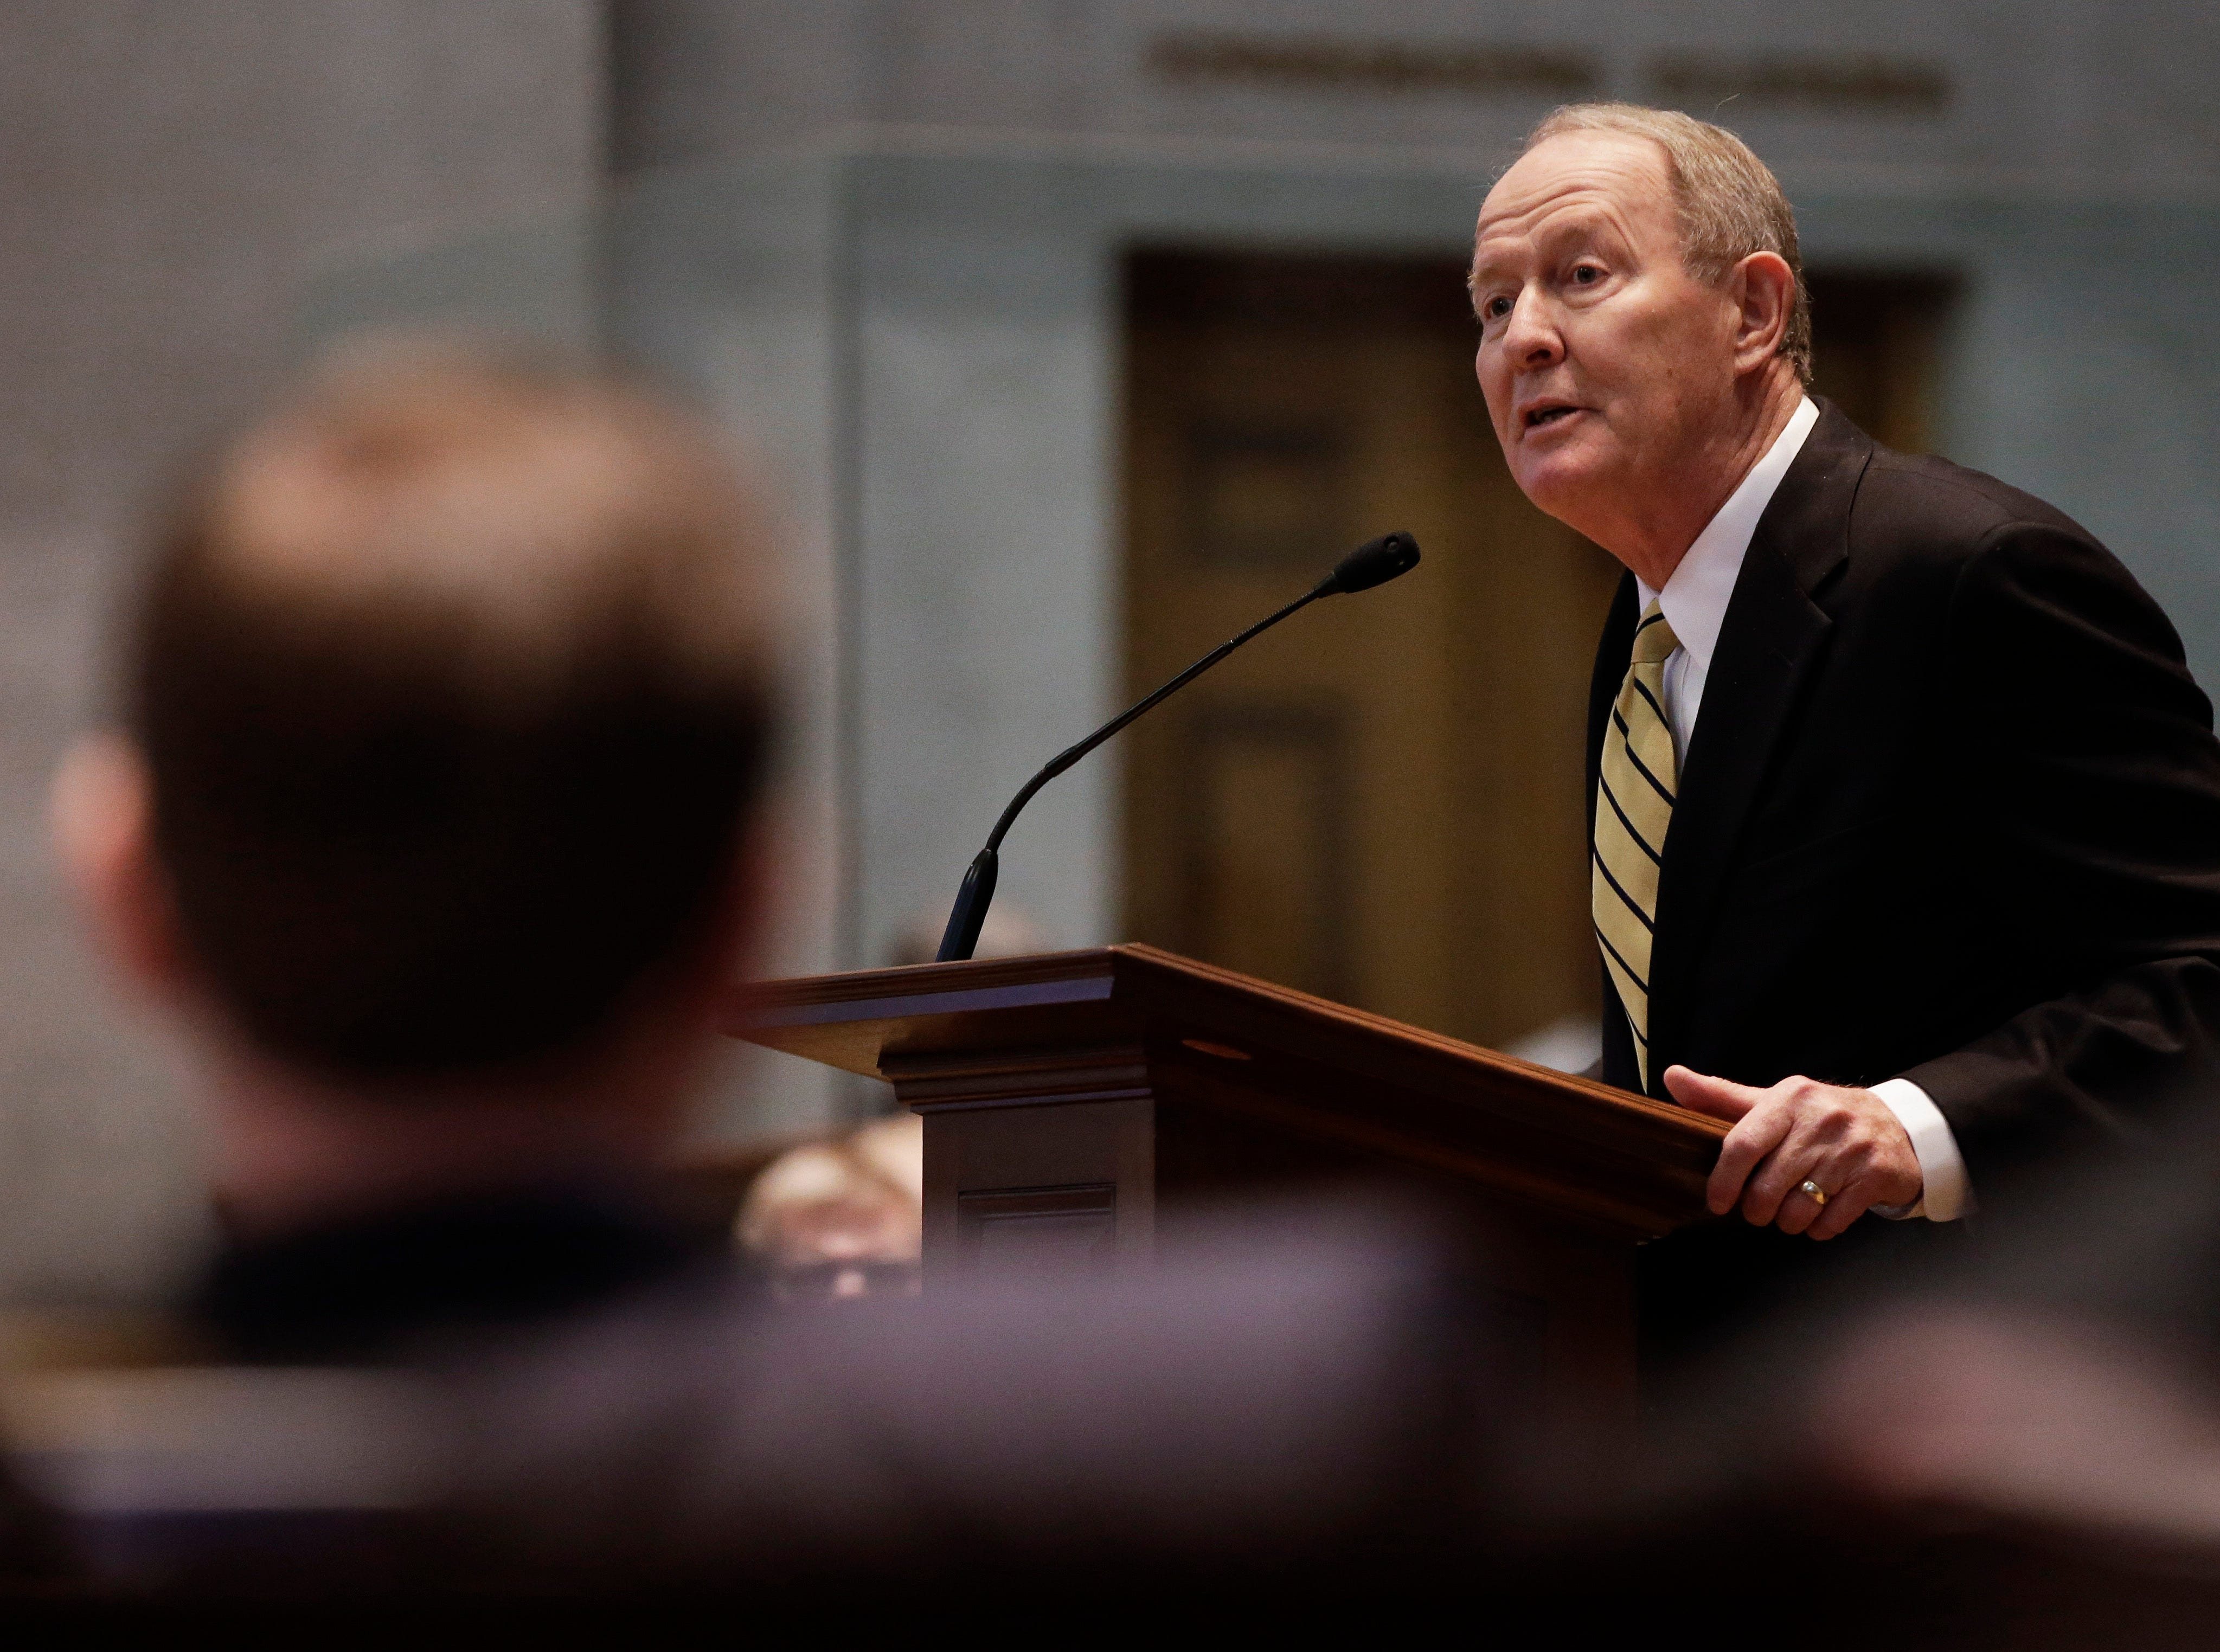 Sen. Lamar Alexander, R-Tenn., speaks to a joint session of the Tennessee General Assembly on Wednesday, Jan. 9, 2013, in Nashville, Tenn. Alexander is proposing a Ògrand swapÓ in which the federal government would take over all responsibility for Medicaid and the states would gain all control over education.